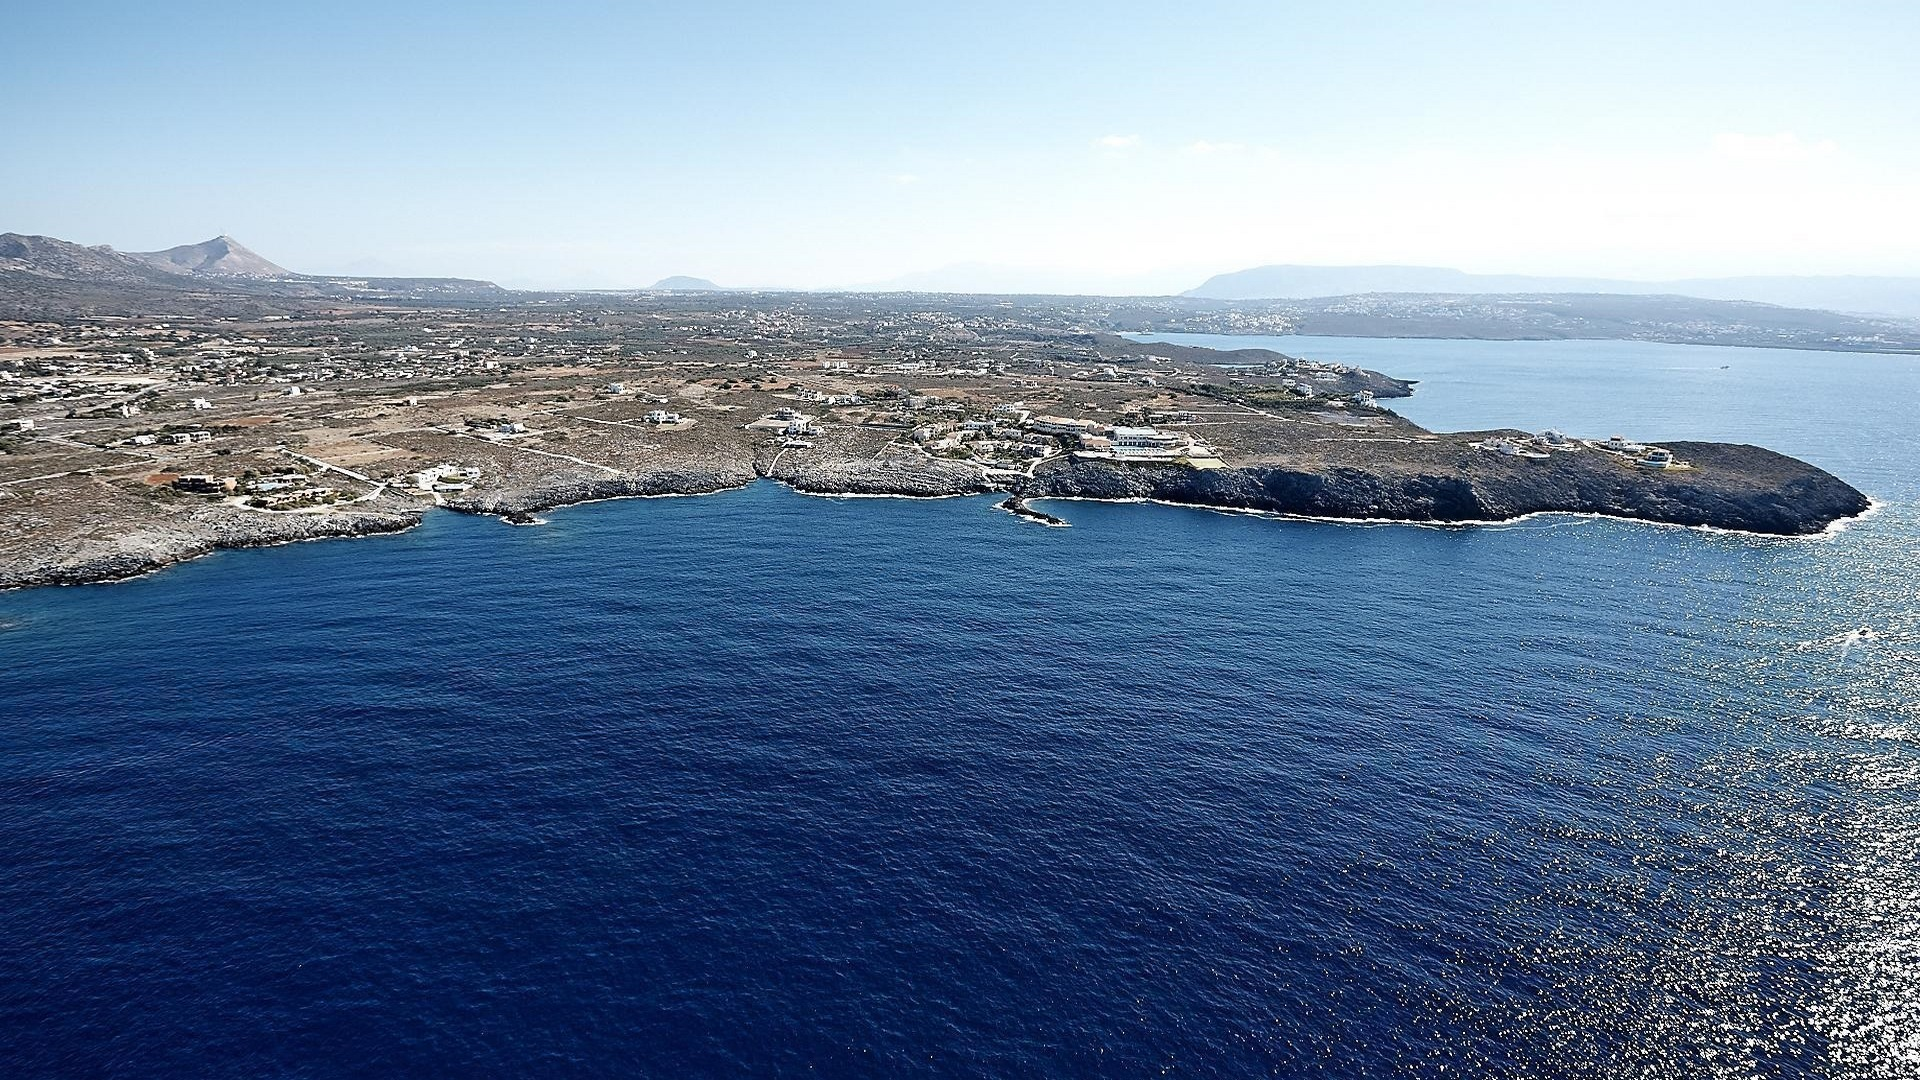 Land plot on the island Crete